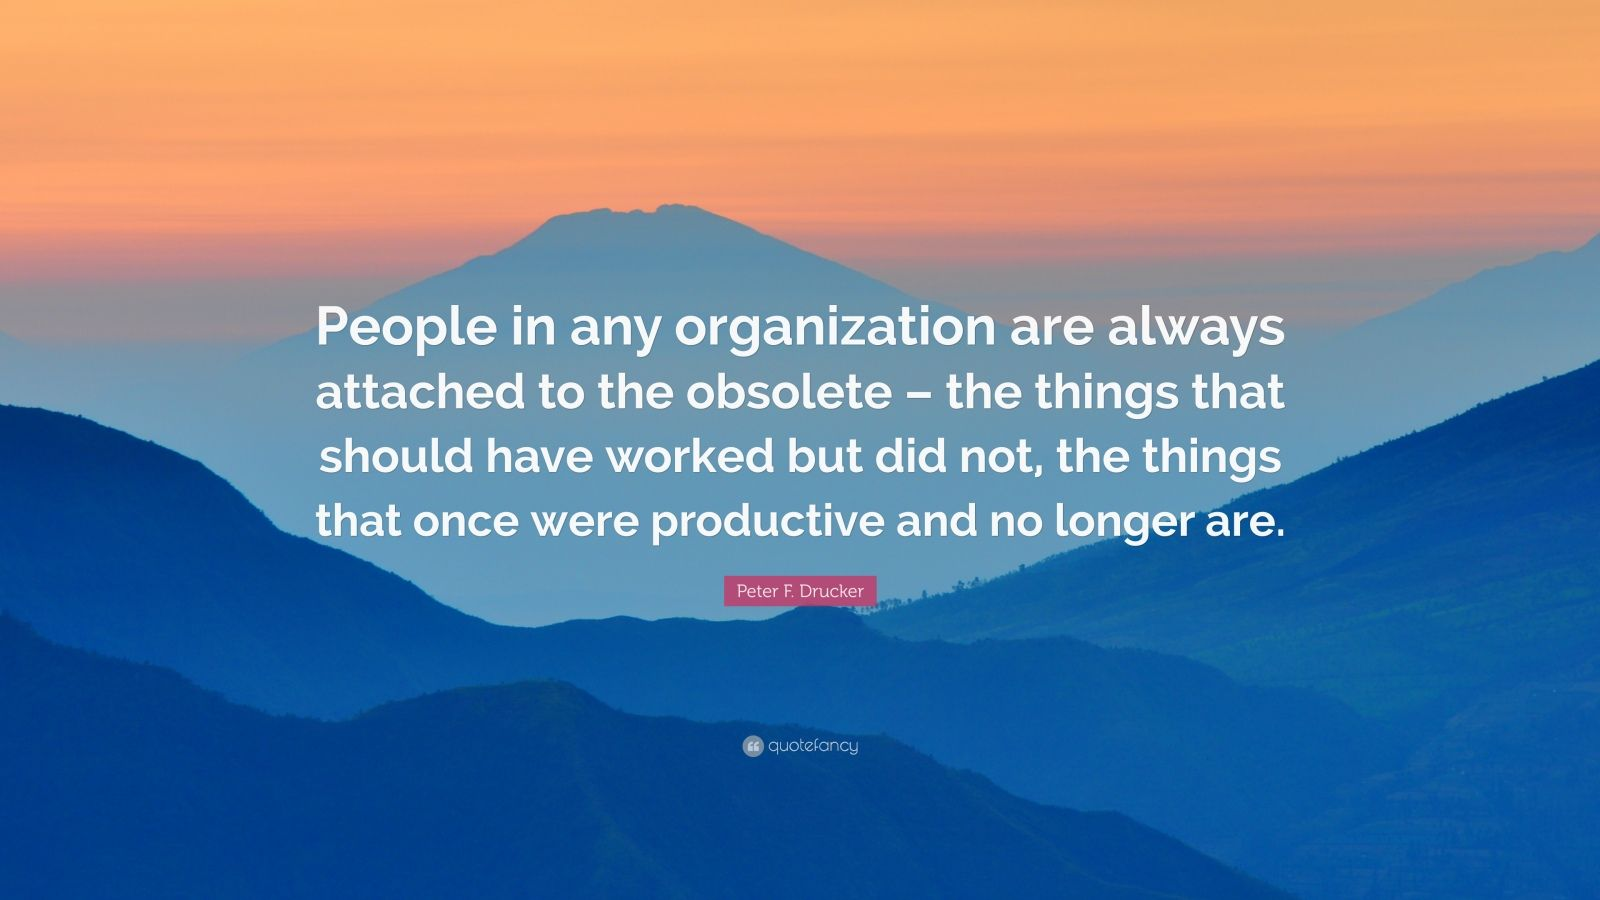 """Peter F. Drucker Quote: """"People in any organization are always attached to the obsolete – the things that should have worked but did not, the things that once were productive and no longer are."""""""